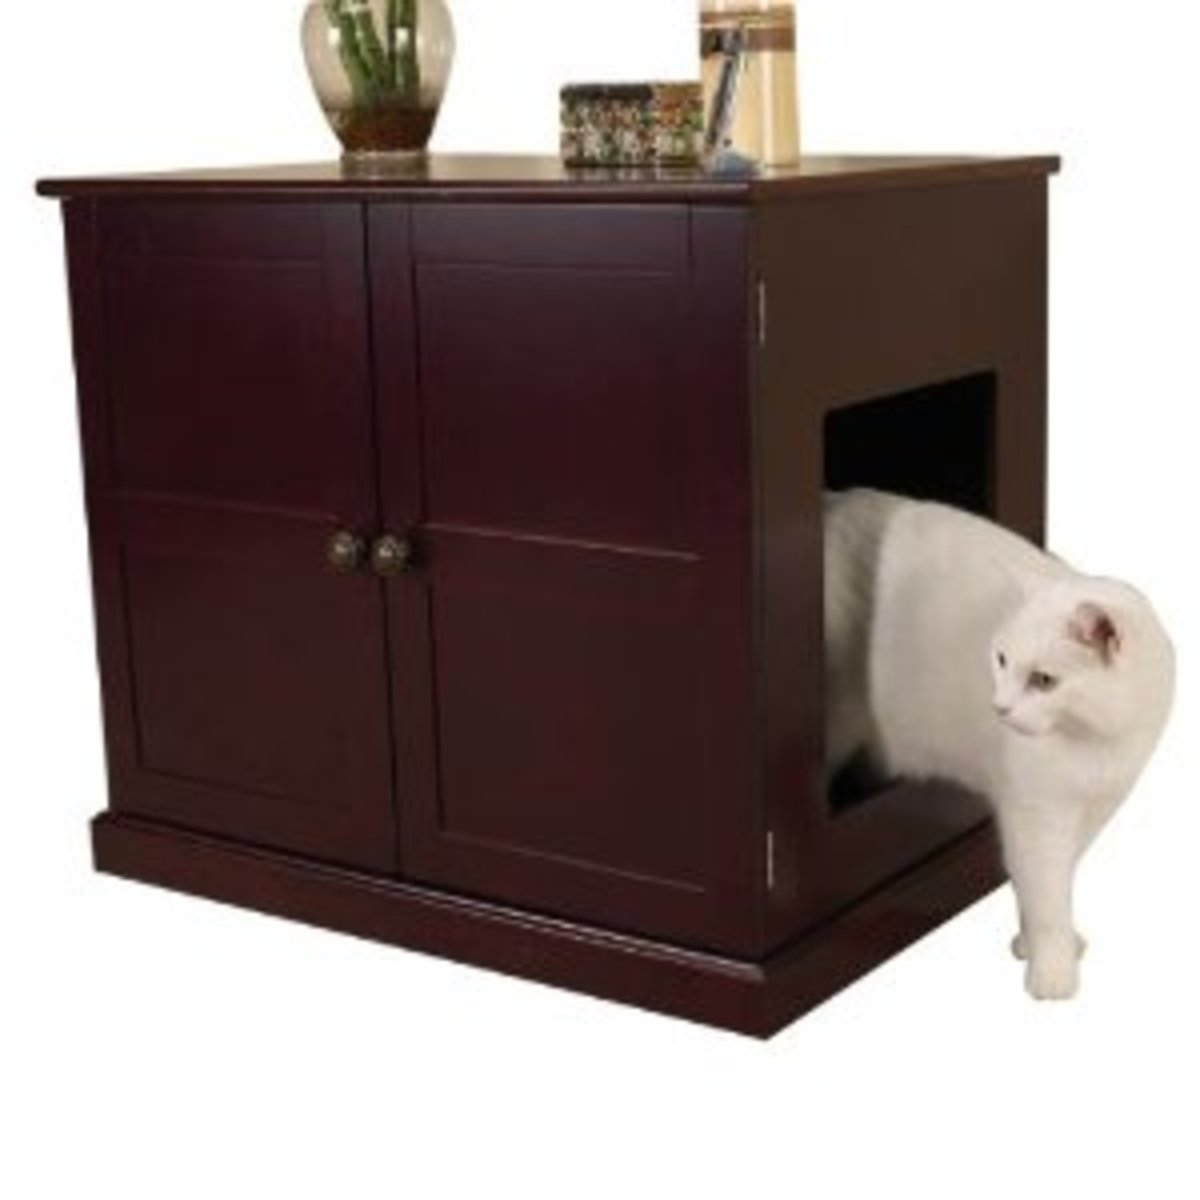 Cat cupboard is a discreet way of keeping the litter tray in the room.